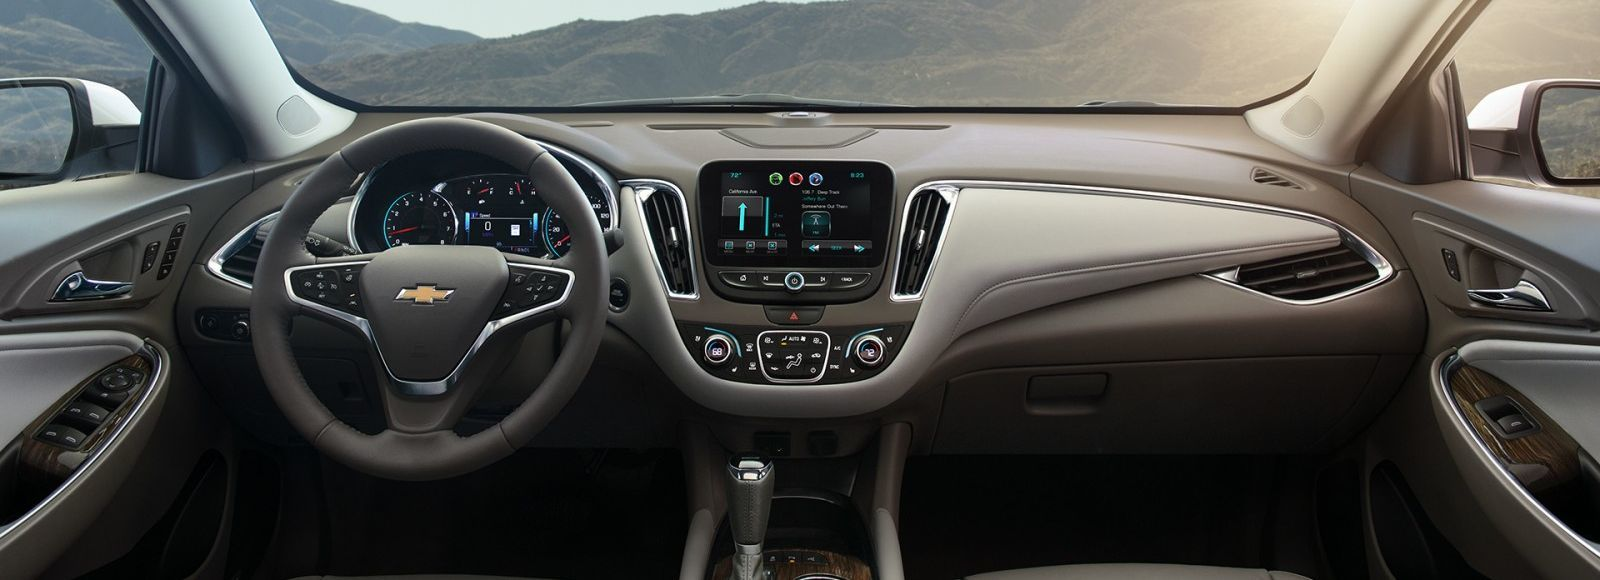 Malibu is Equipped with OnStar® 4G LTE Wi-Fi